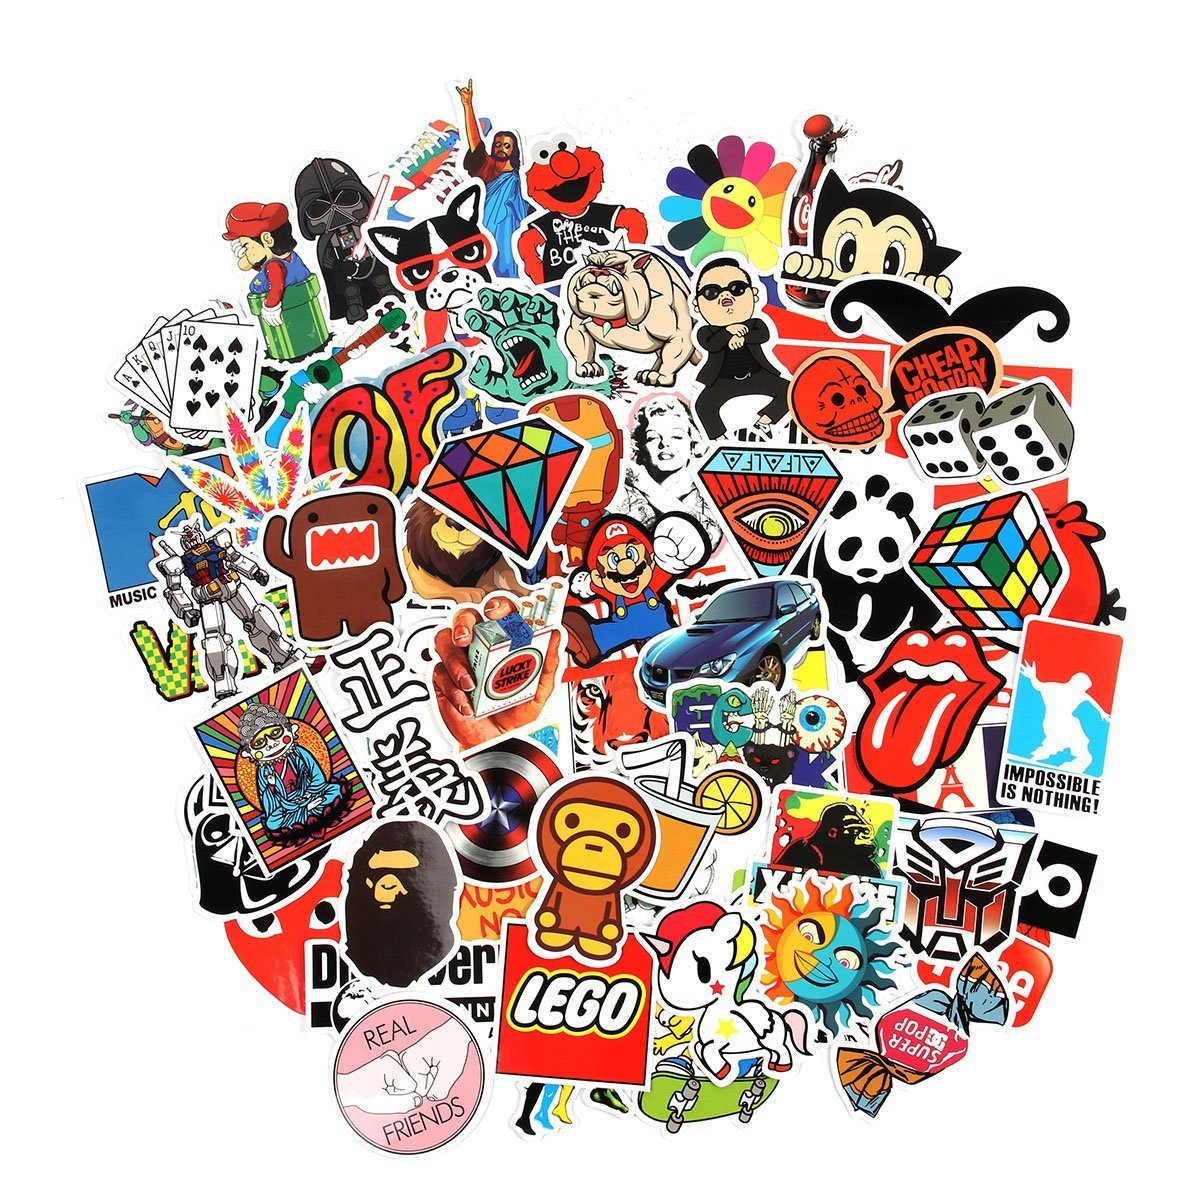 CHNLML Random Sticker 50-900pcs Variety Vinyl Car Sticker Motorcycle Bicycle Luggage Decal Graffiti Patches Skateboard Stickers for Laptop Stickers (200PCS) by CHNLML (Image #2)